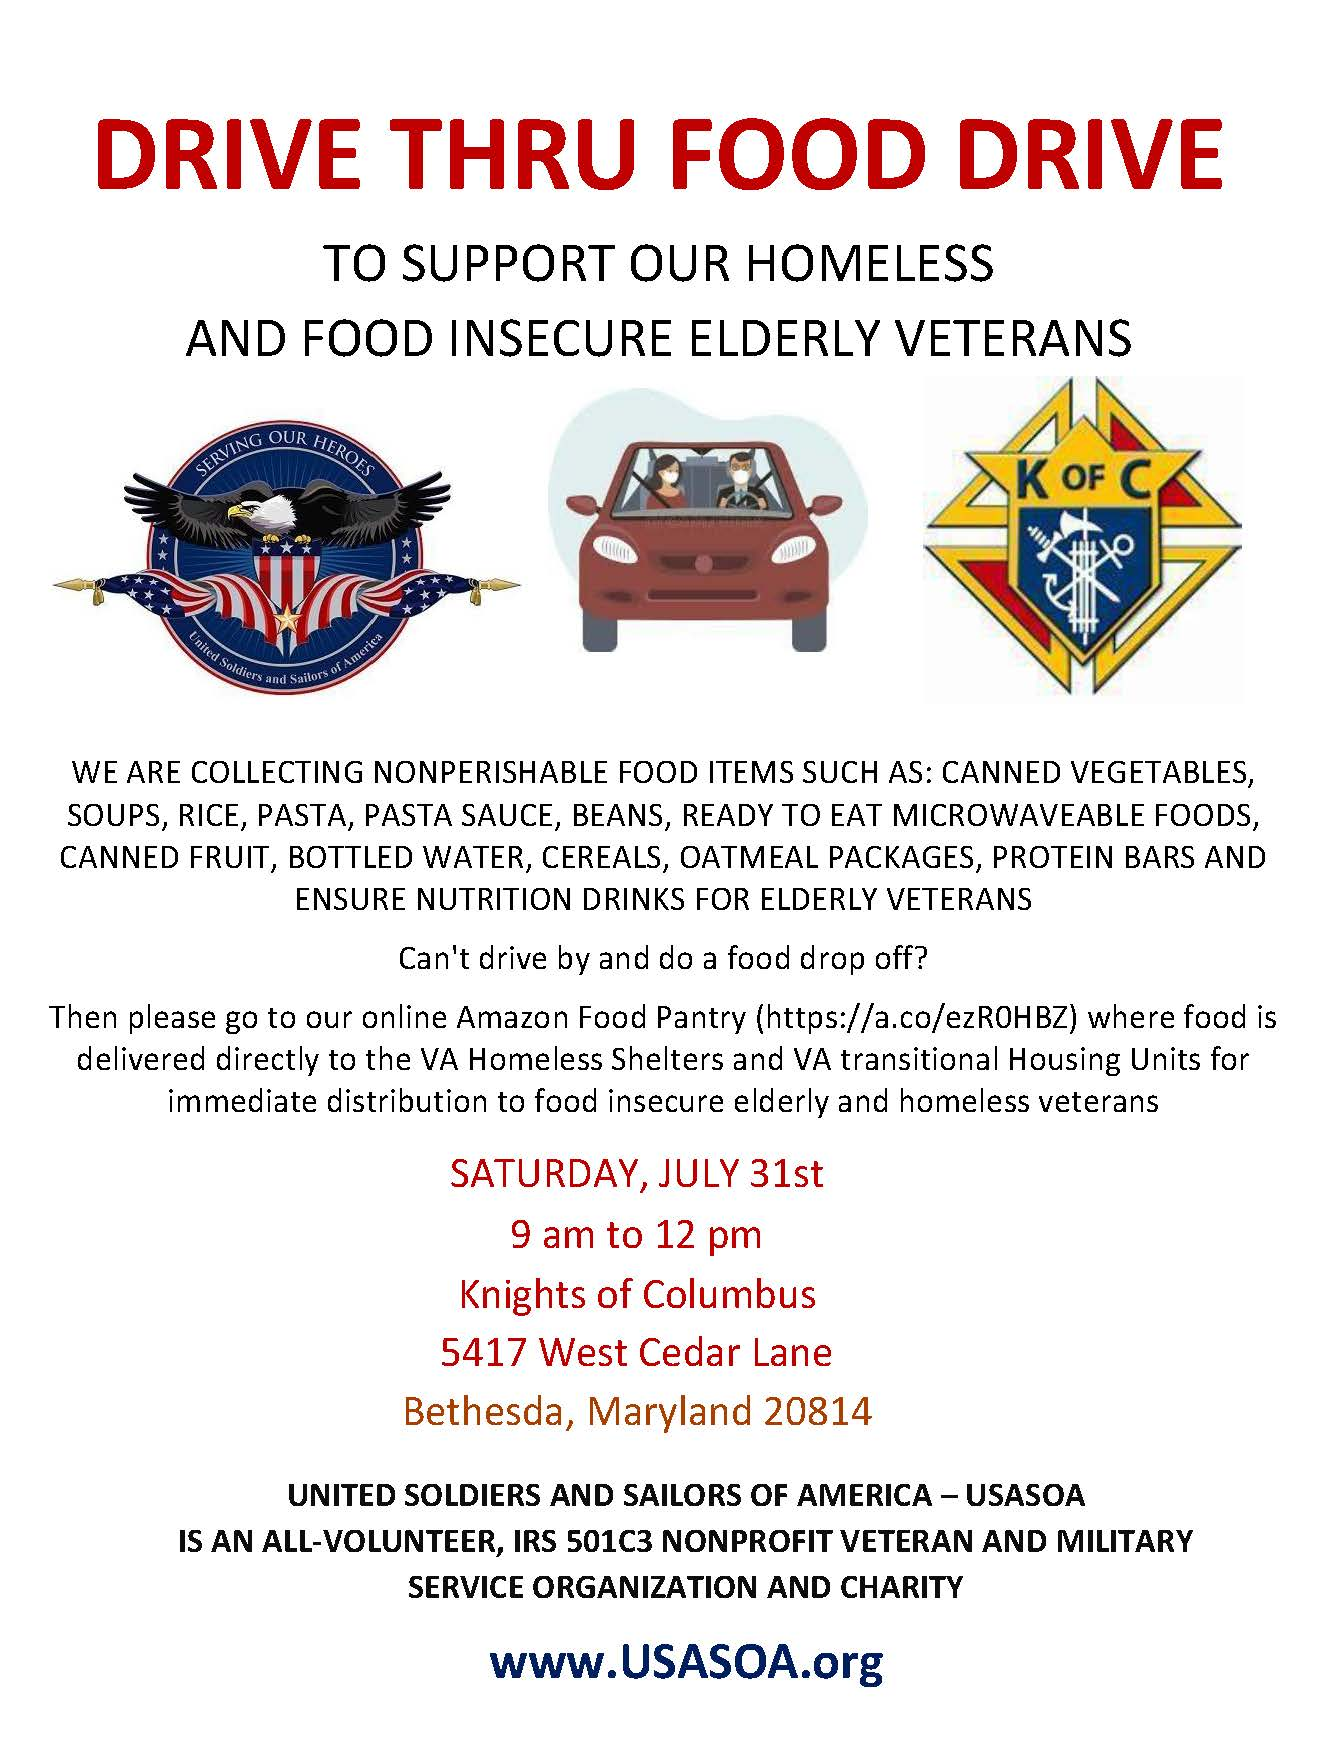 USASOA Food Collection Drive 7/31 9am to 12pm